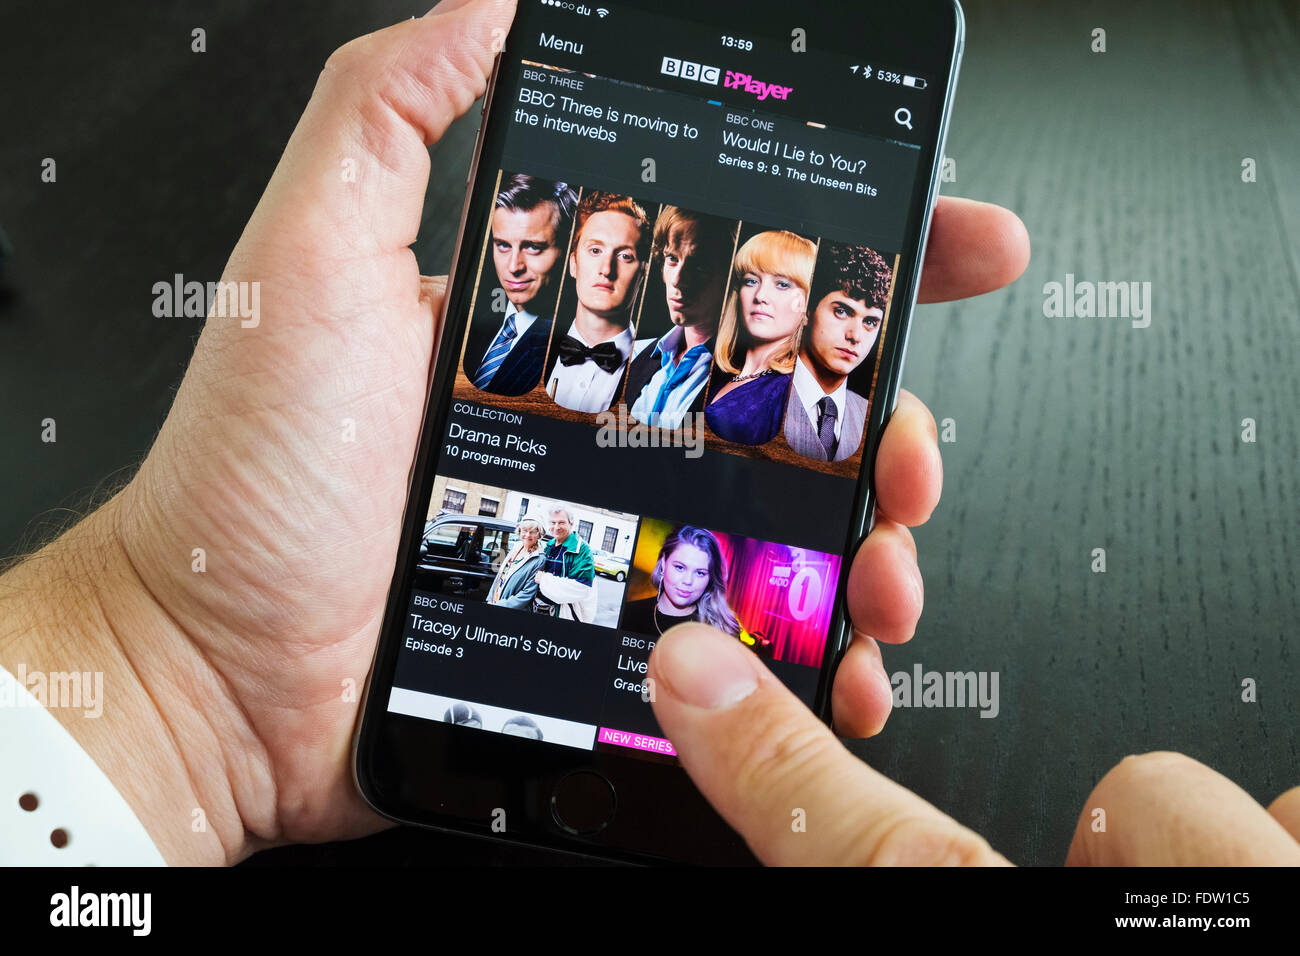 Home screen of BBC iPlayer catchup TV streaming service on iPhone 6 Plus smart phone - Stock Image